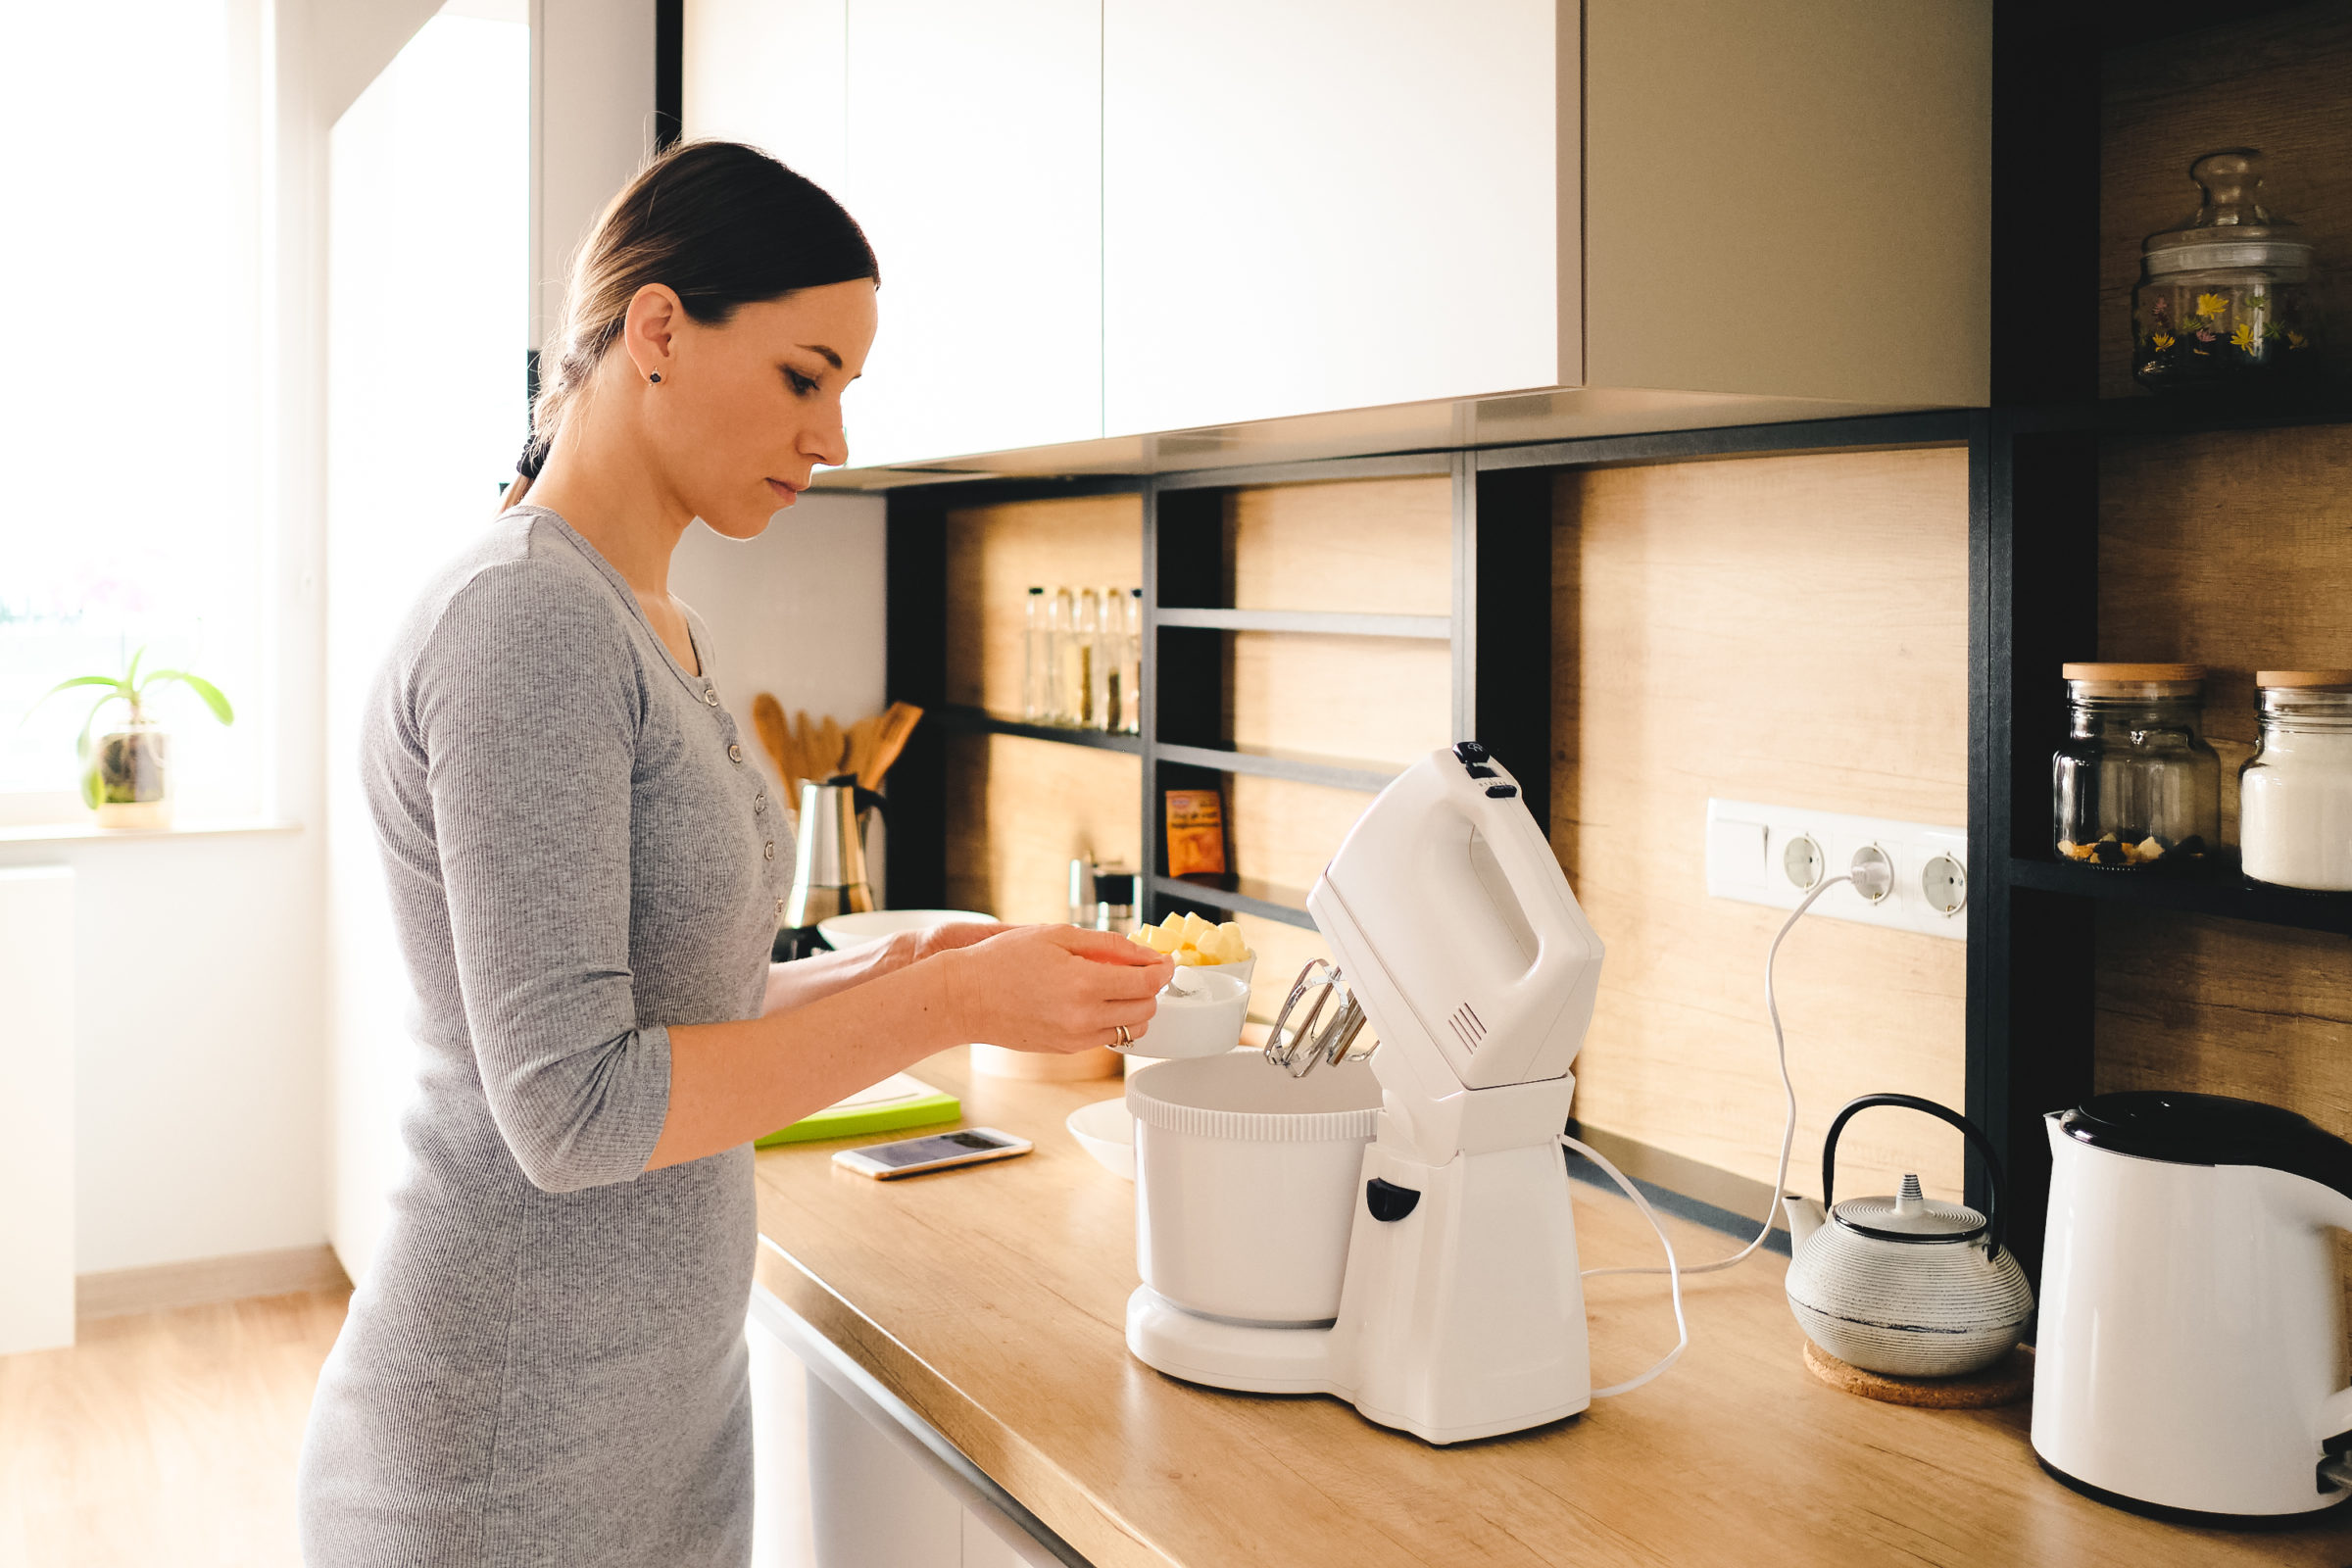 authentic woman using a handheld mixer 85PGY44